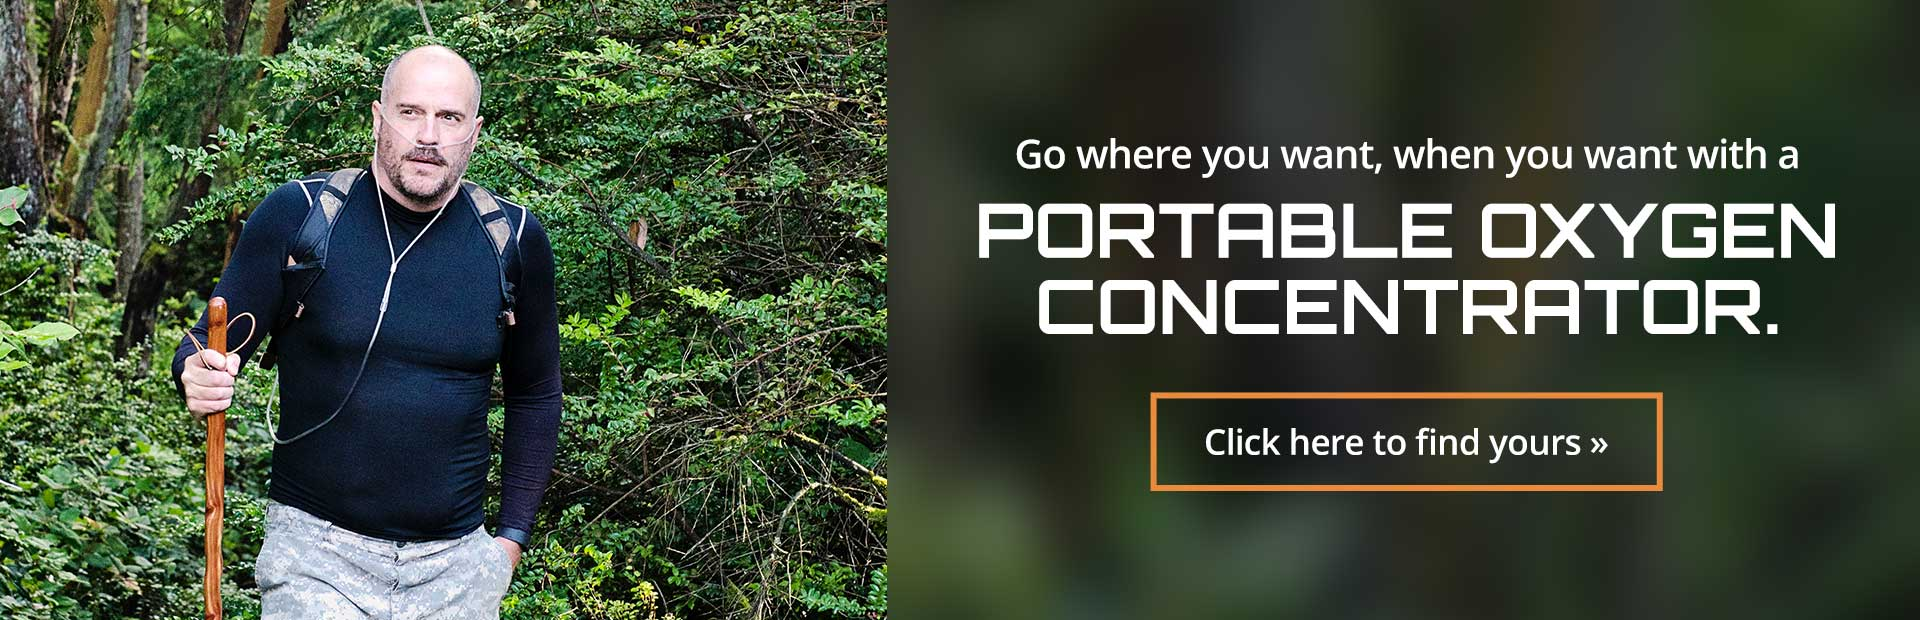 Go where you want, when you want with a portable oxygen concentrator. Click here to find yours.